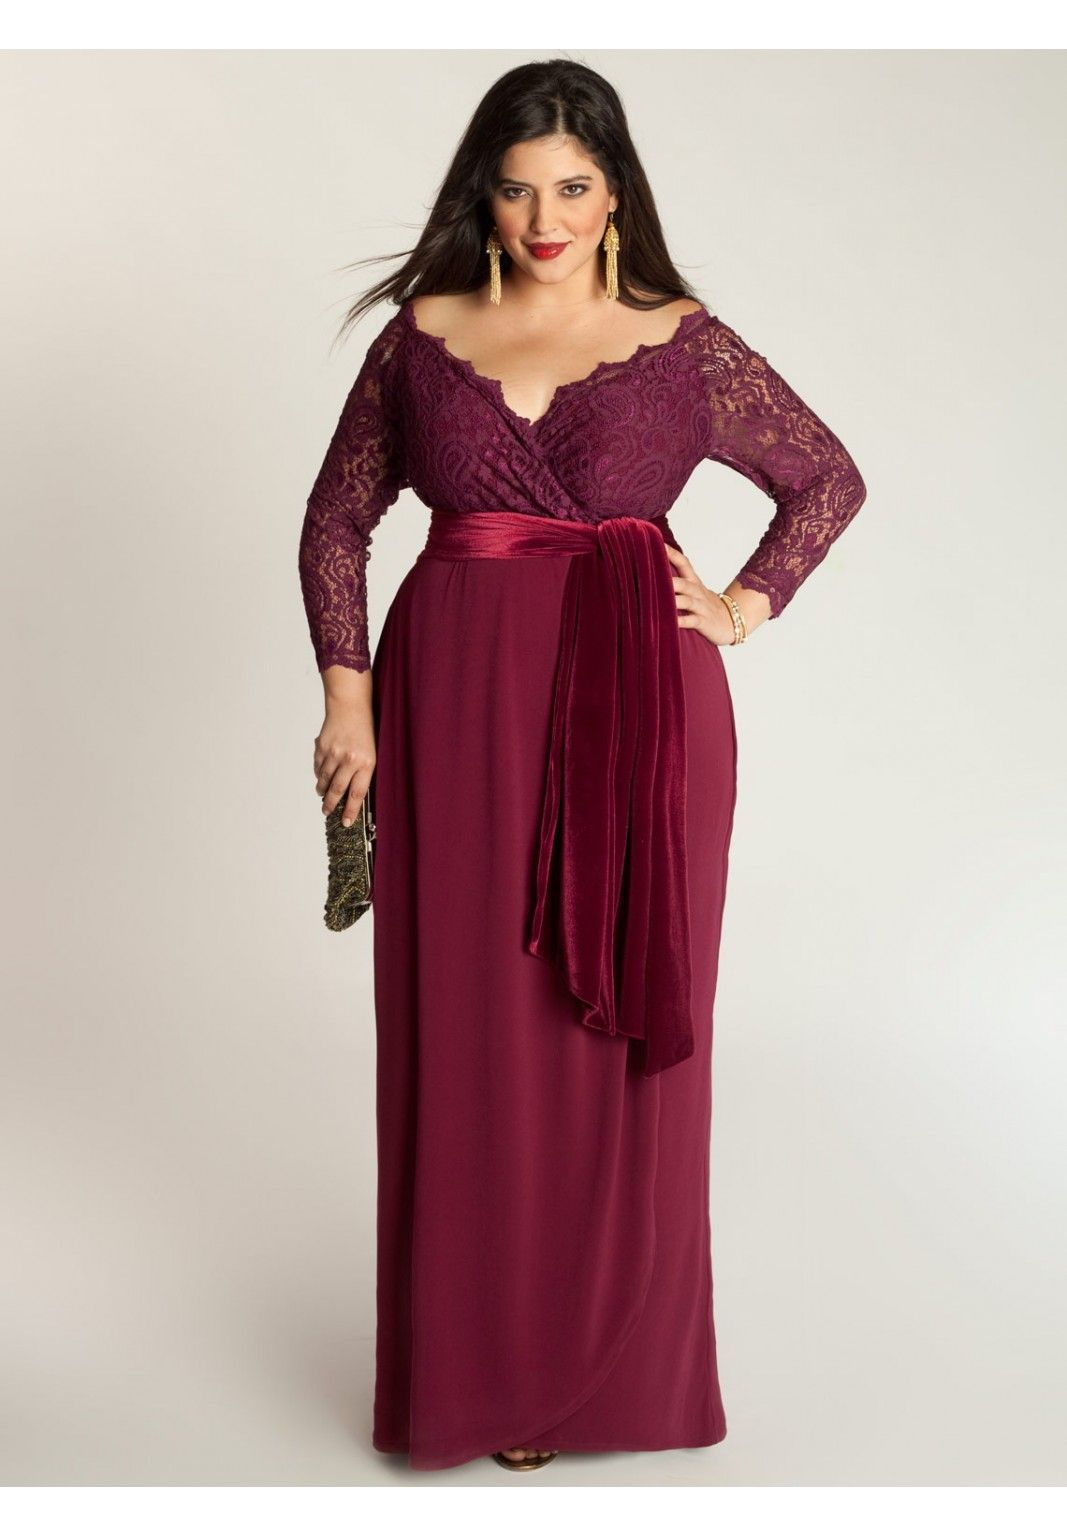 Plus size dresses for a wedding  Anastasia Gown in Ruby BeckZadik wedding  Dresses just cuz